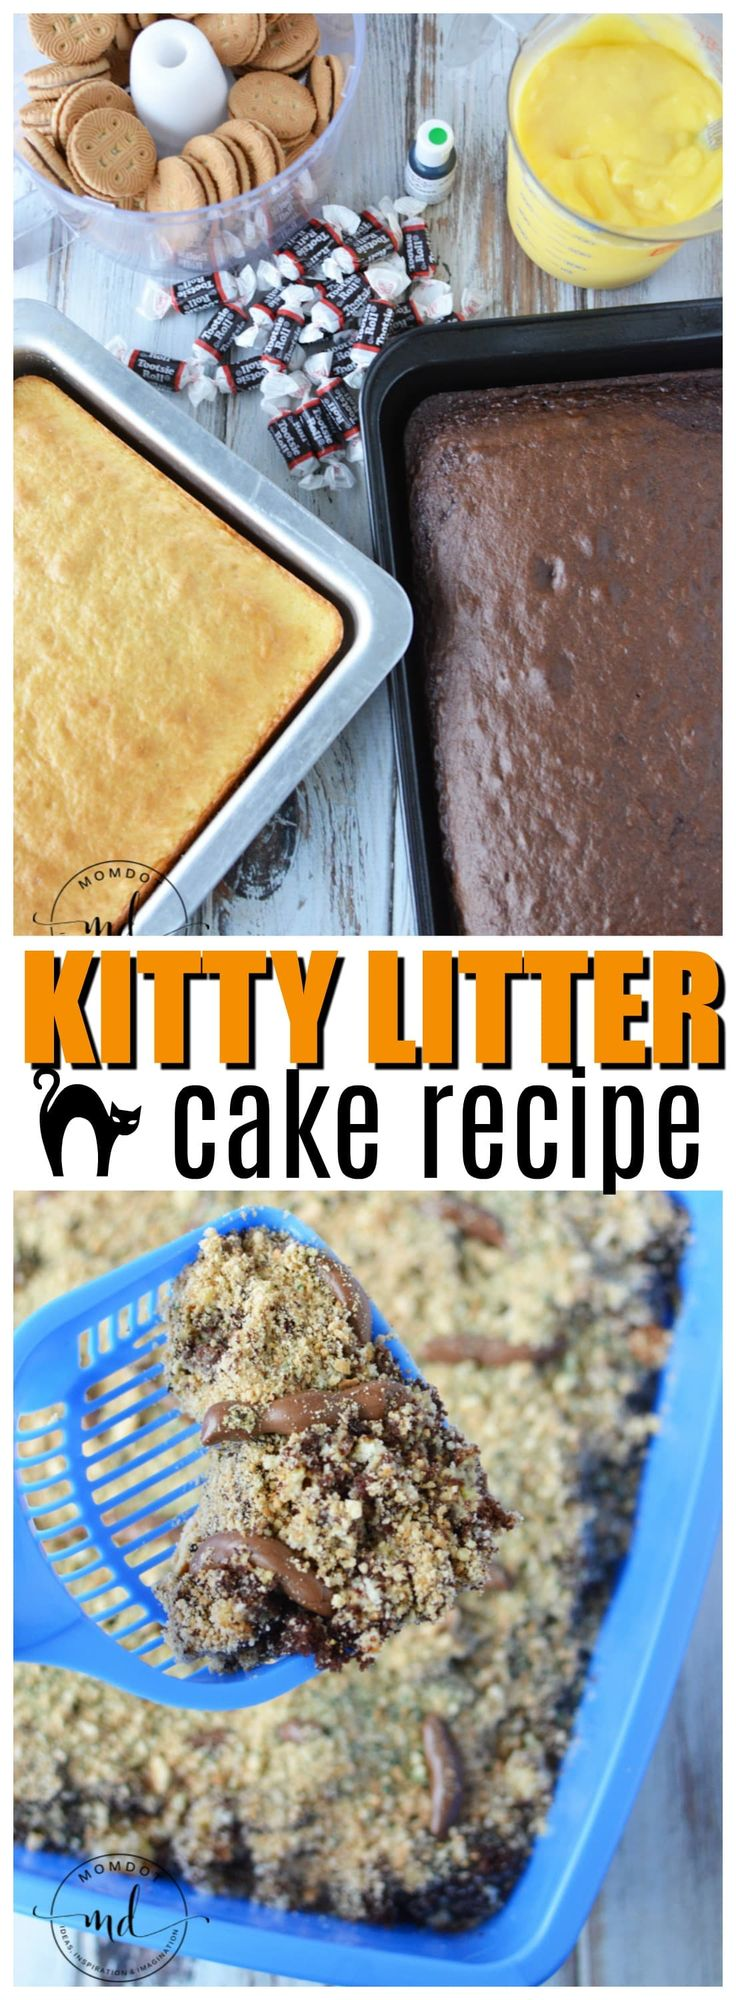 Kitty Litter Cake is grossest and tastiest recipes to make Halloween a scream! Serve up kitty litter cake recipe with box cake mix and tootsie rolls